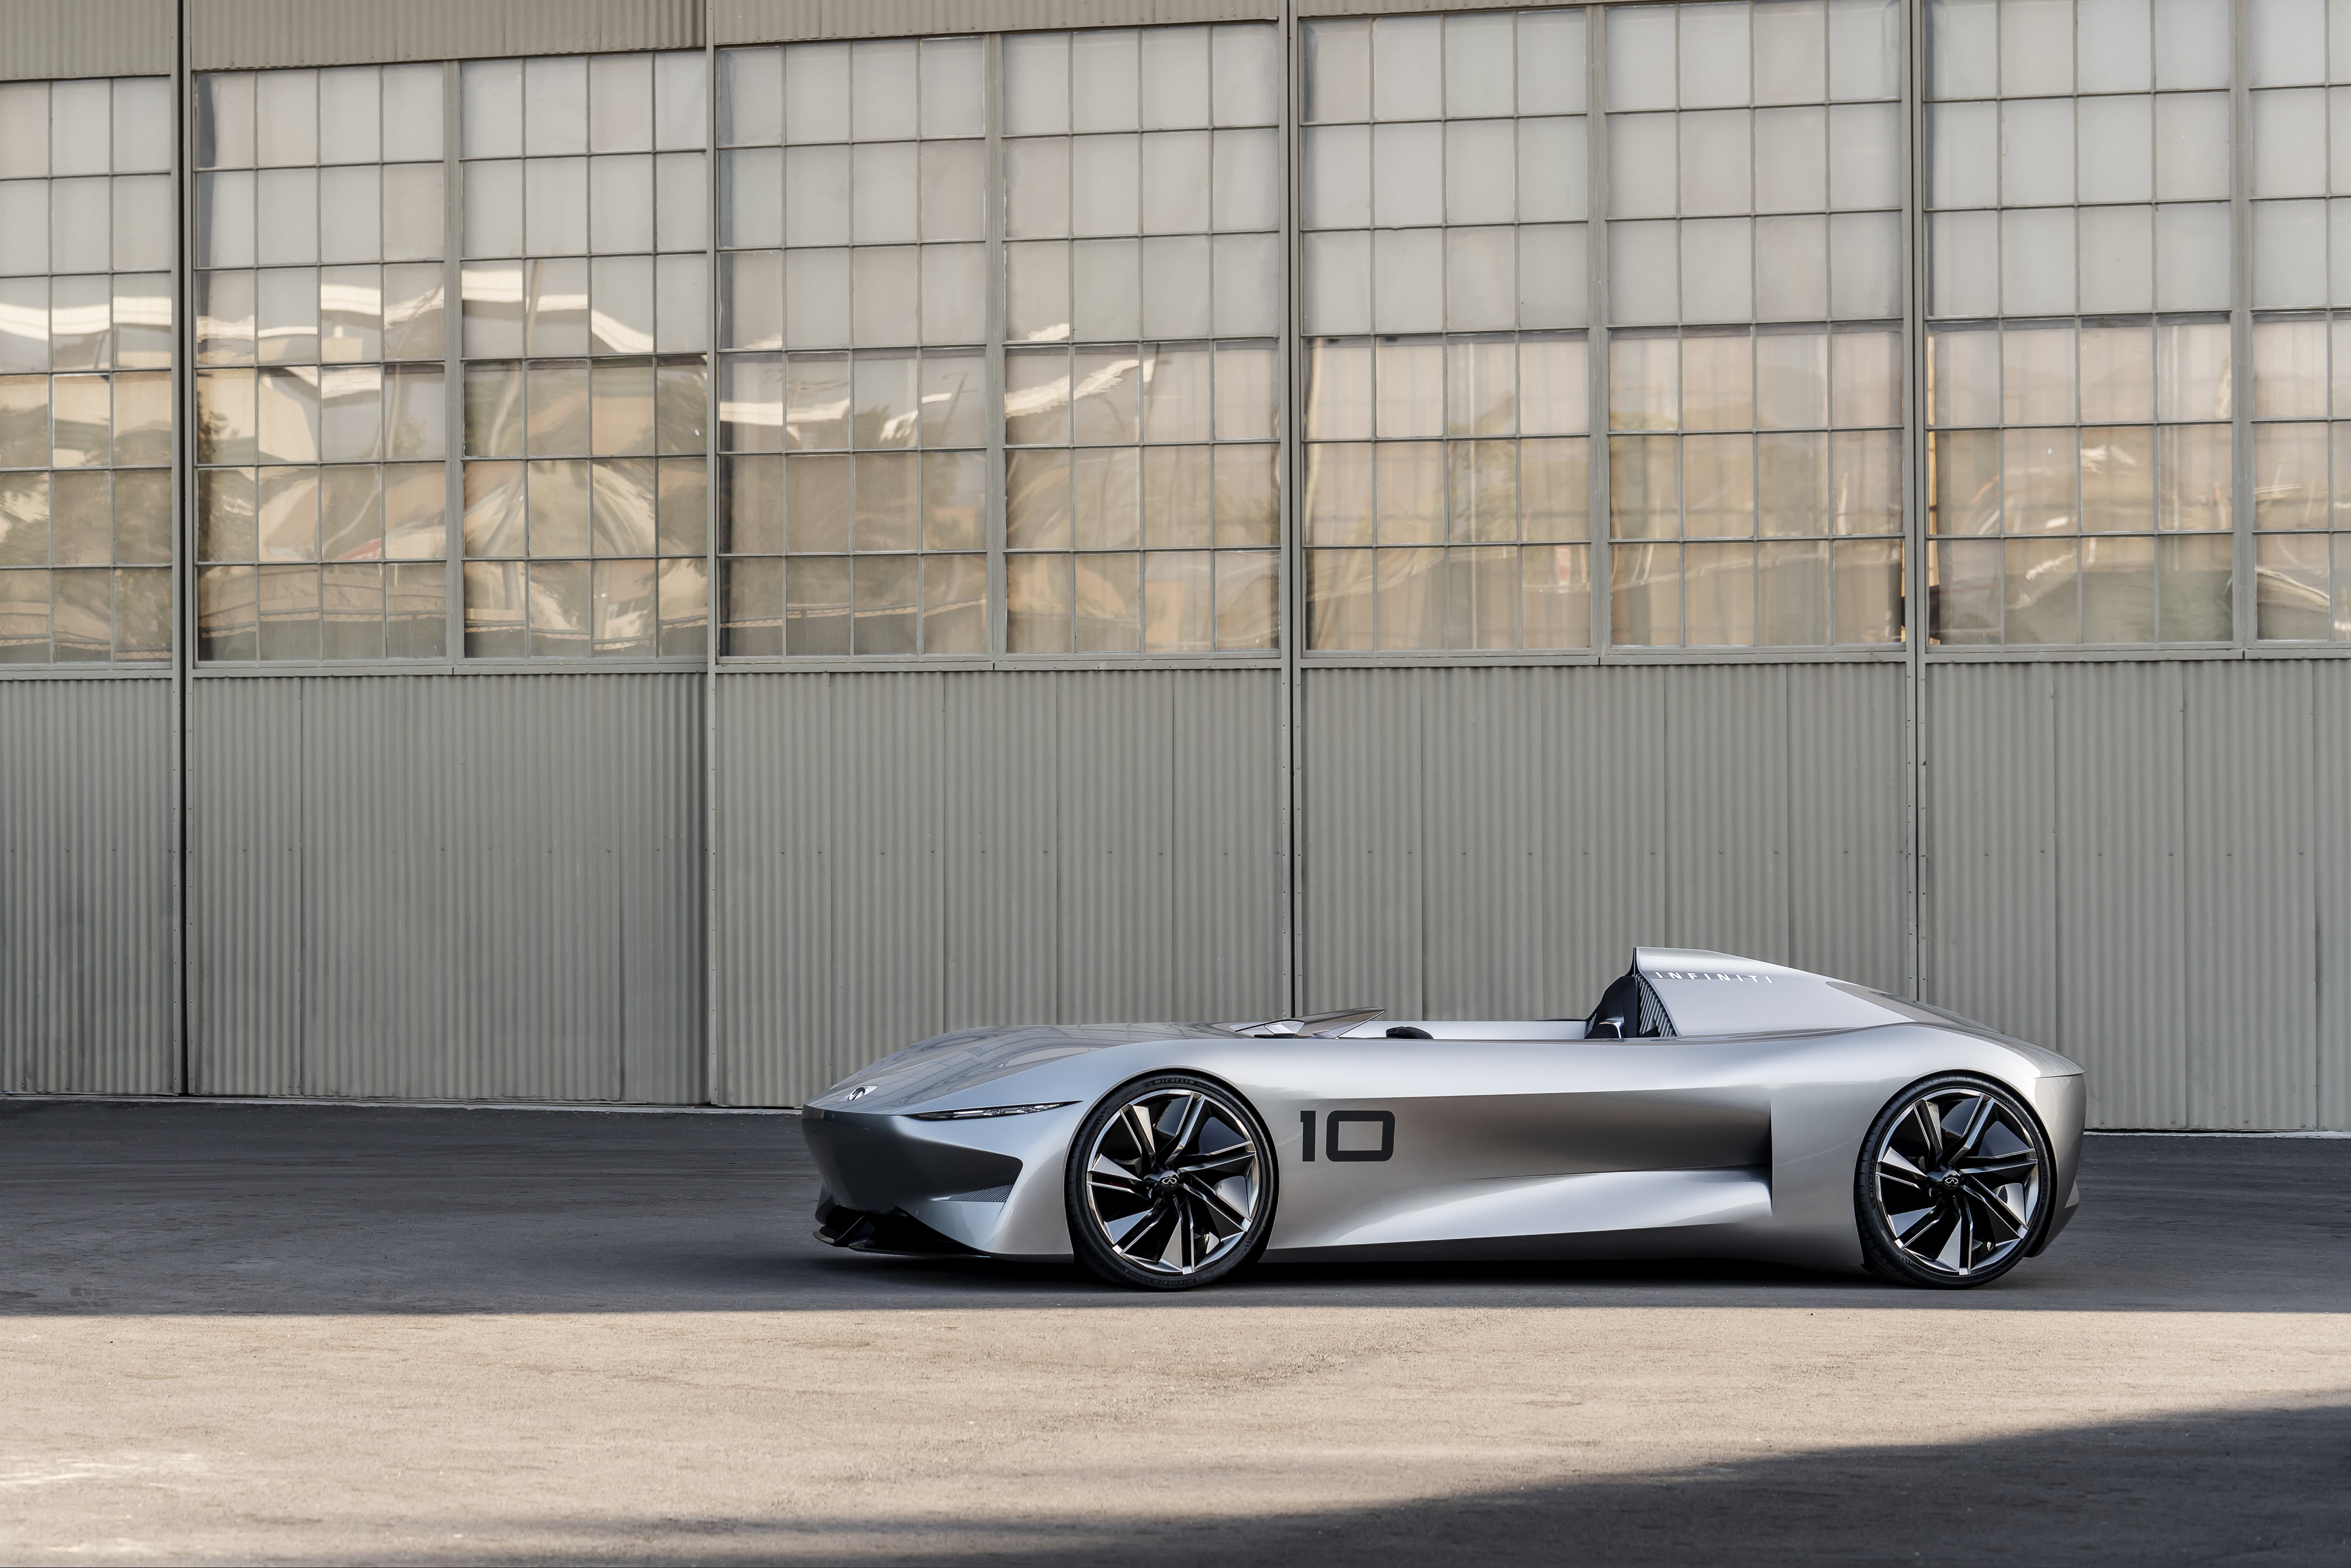 Habib Commented On The Design Of Electric Prototype Vehicle Unveiled Today